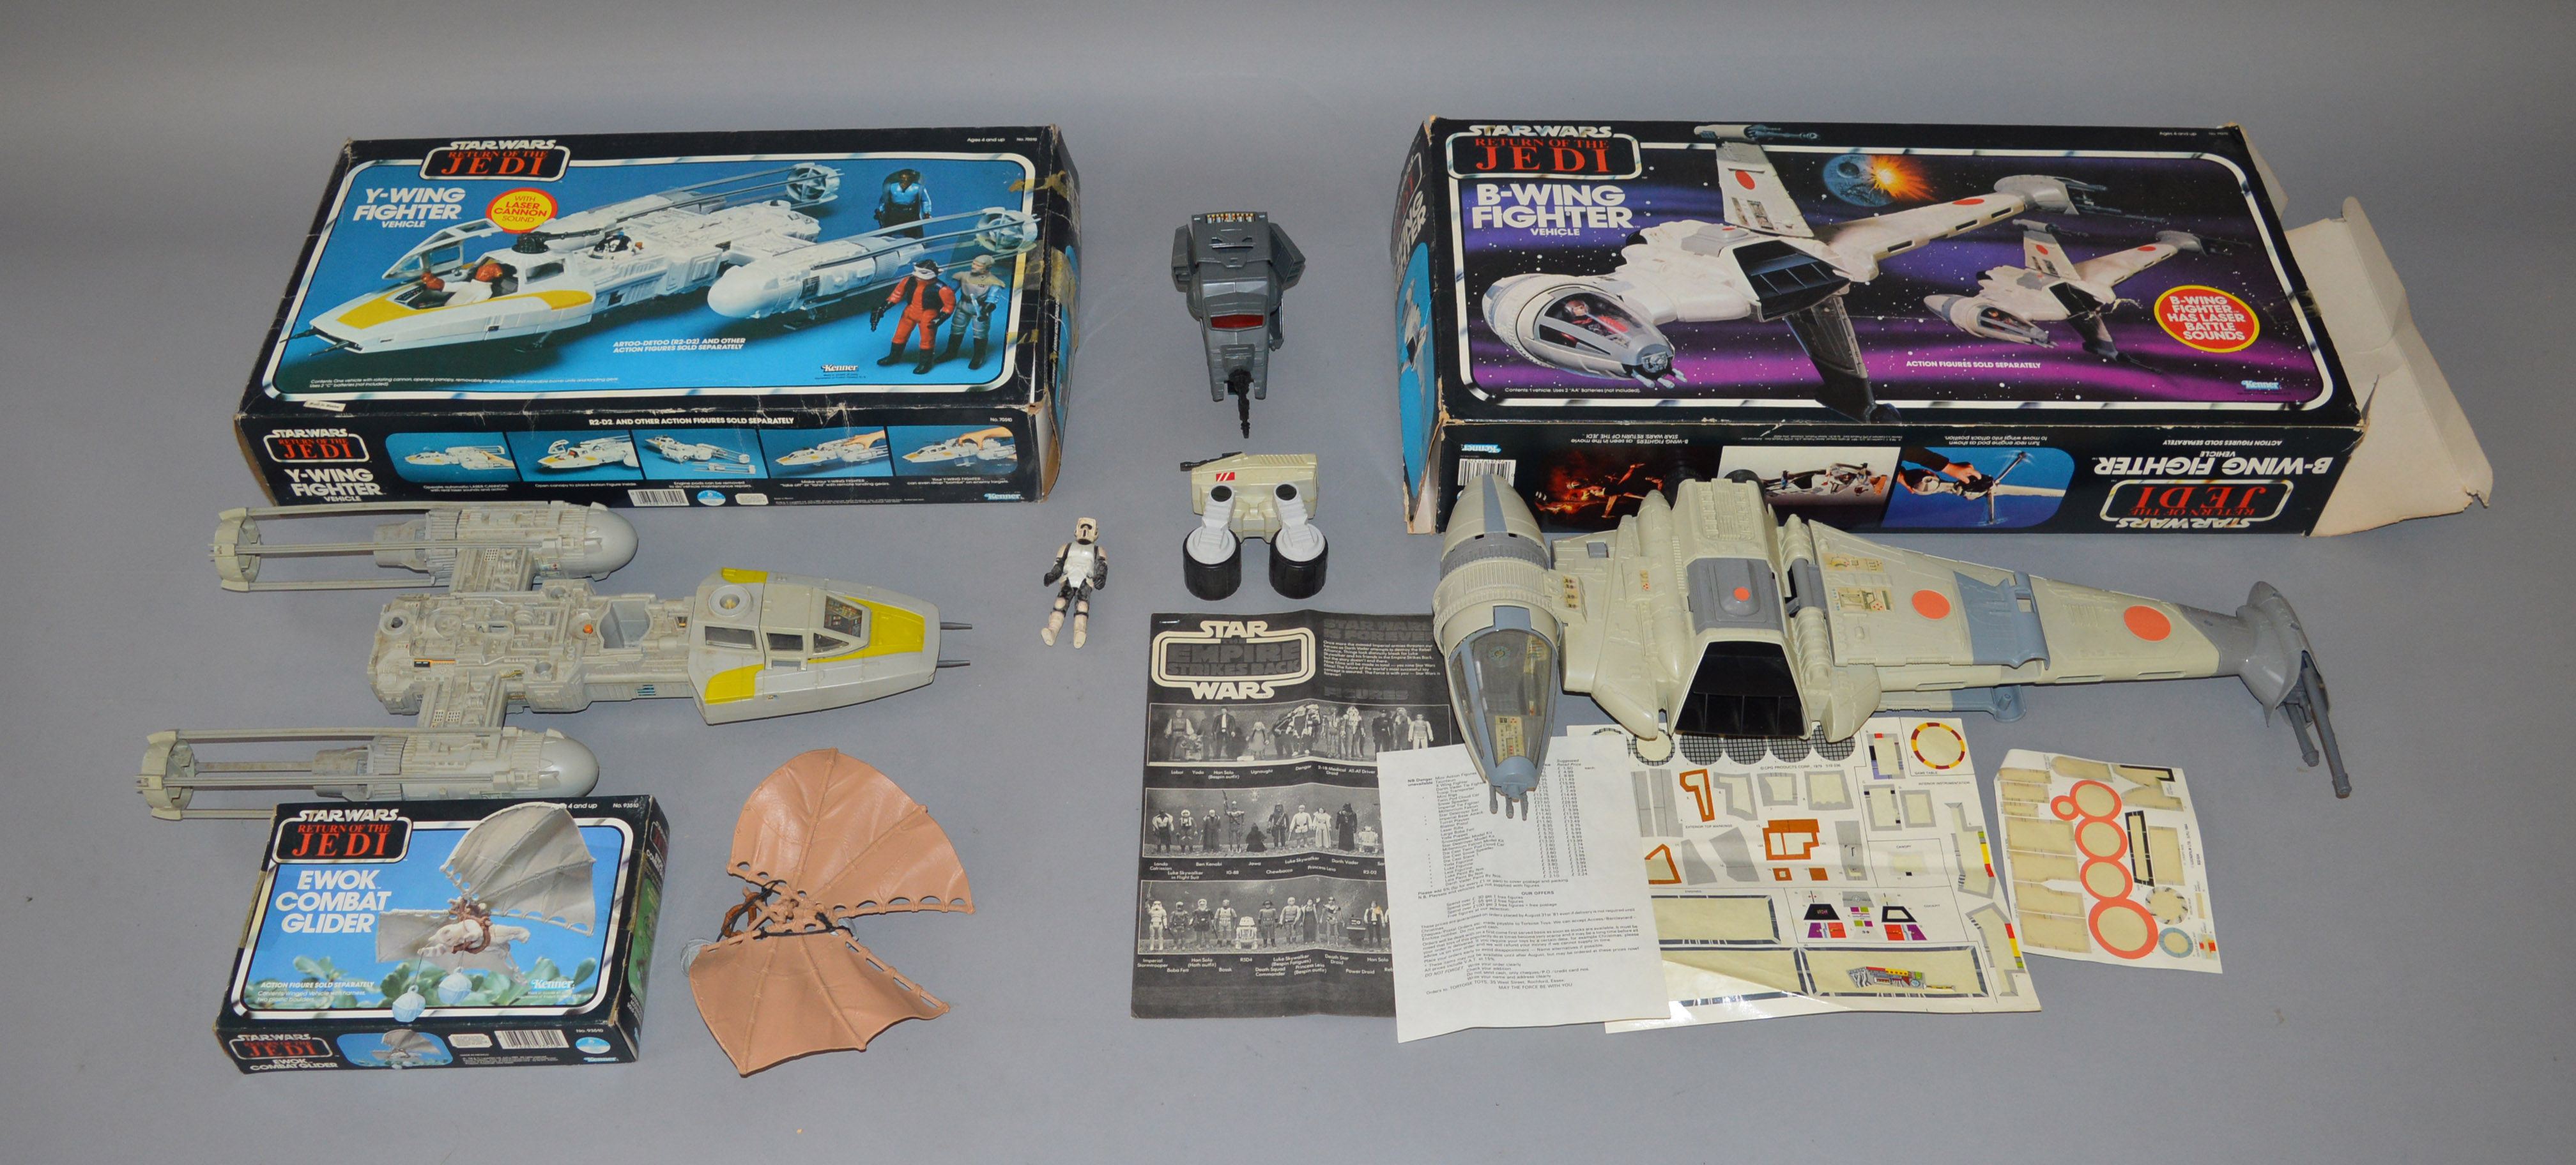 Kenner Star Wars B Wing Fighter boxed Y Wing Fighter with